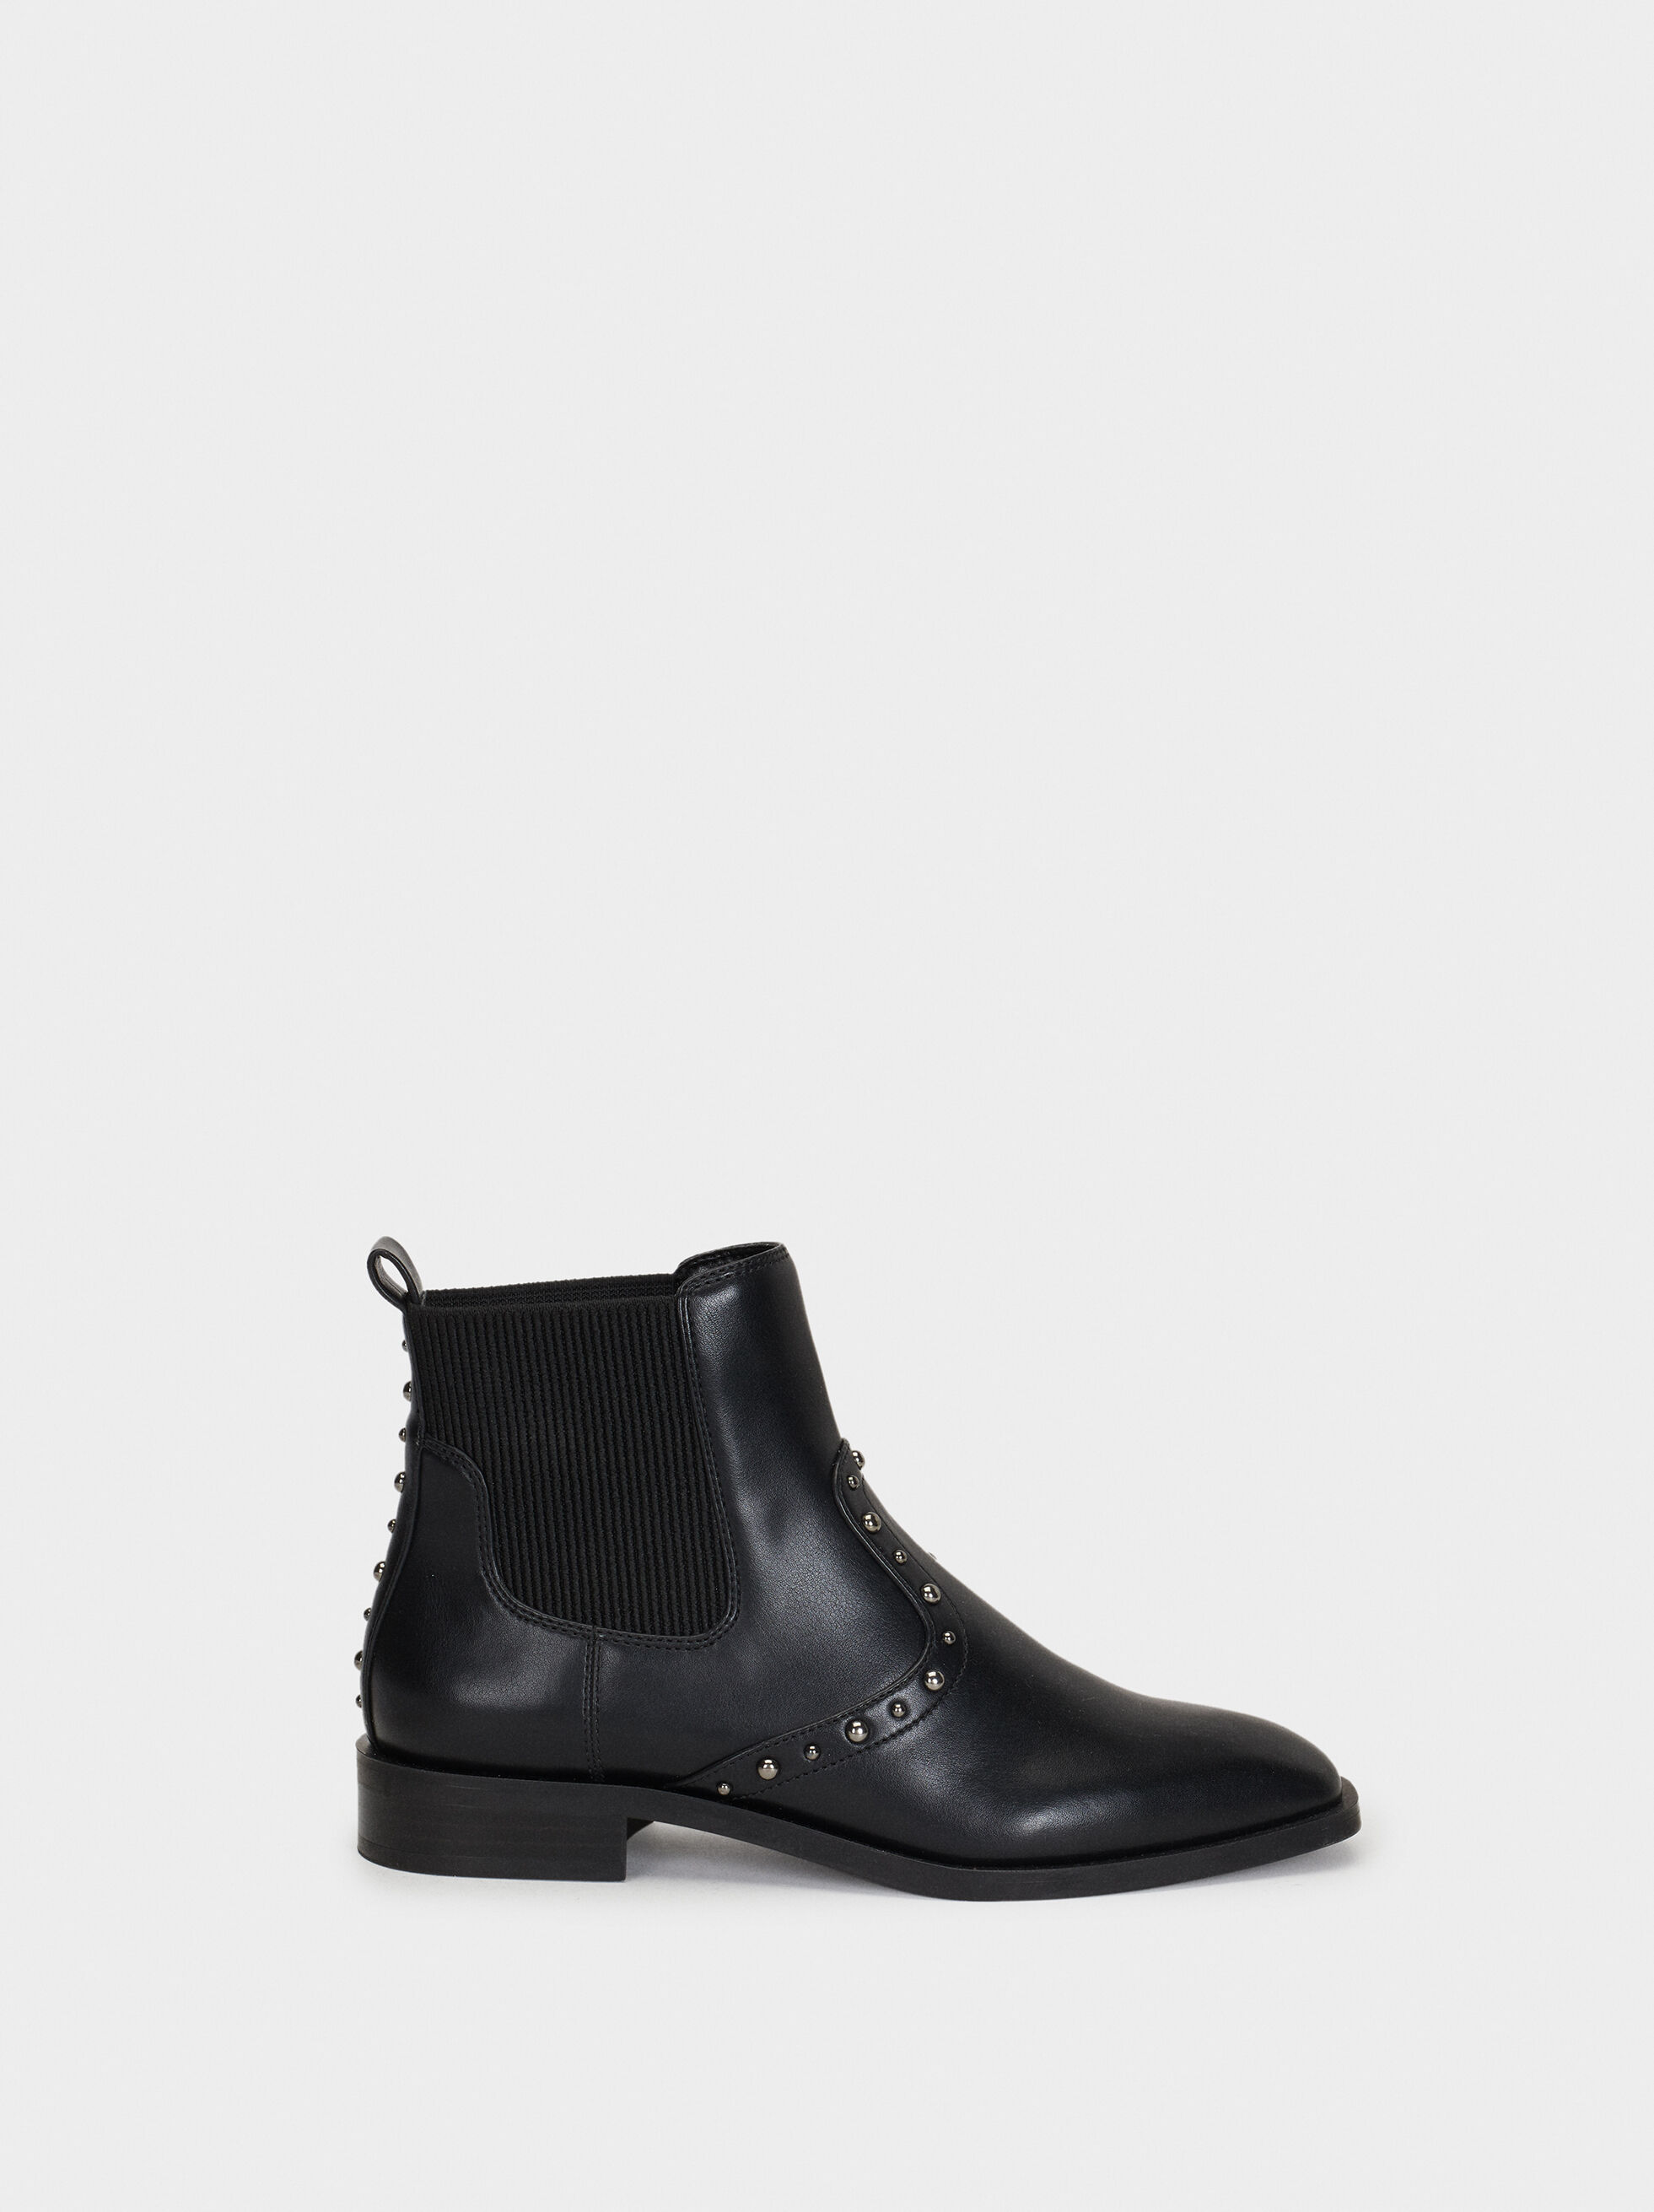 Studded Ankle Boots, , hi-res